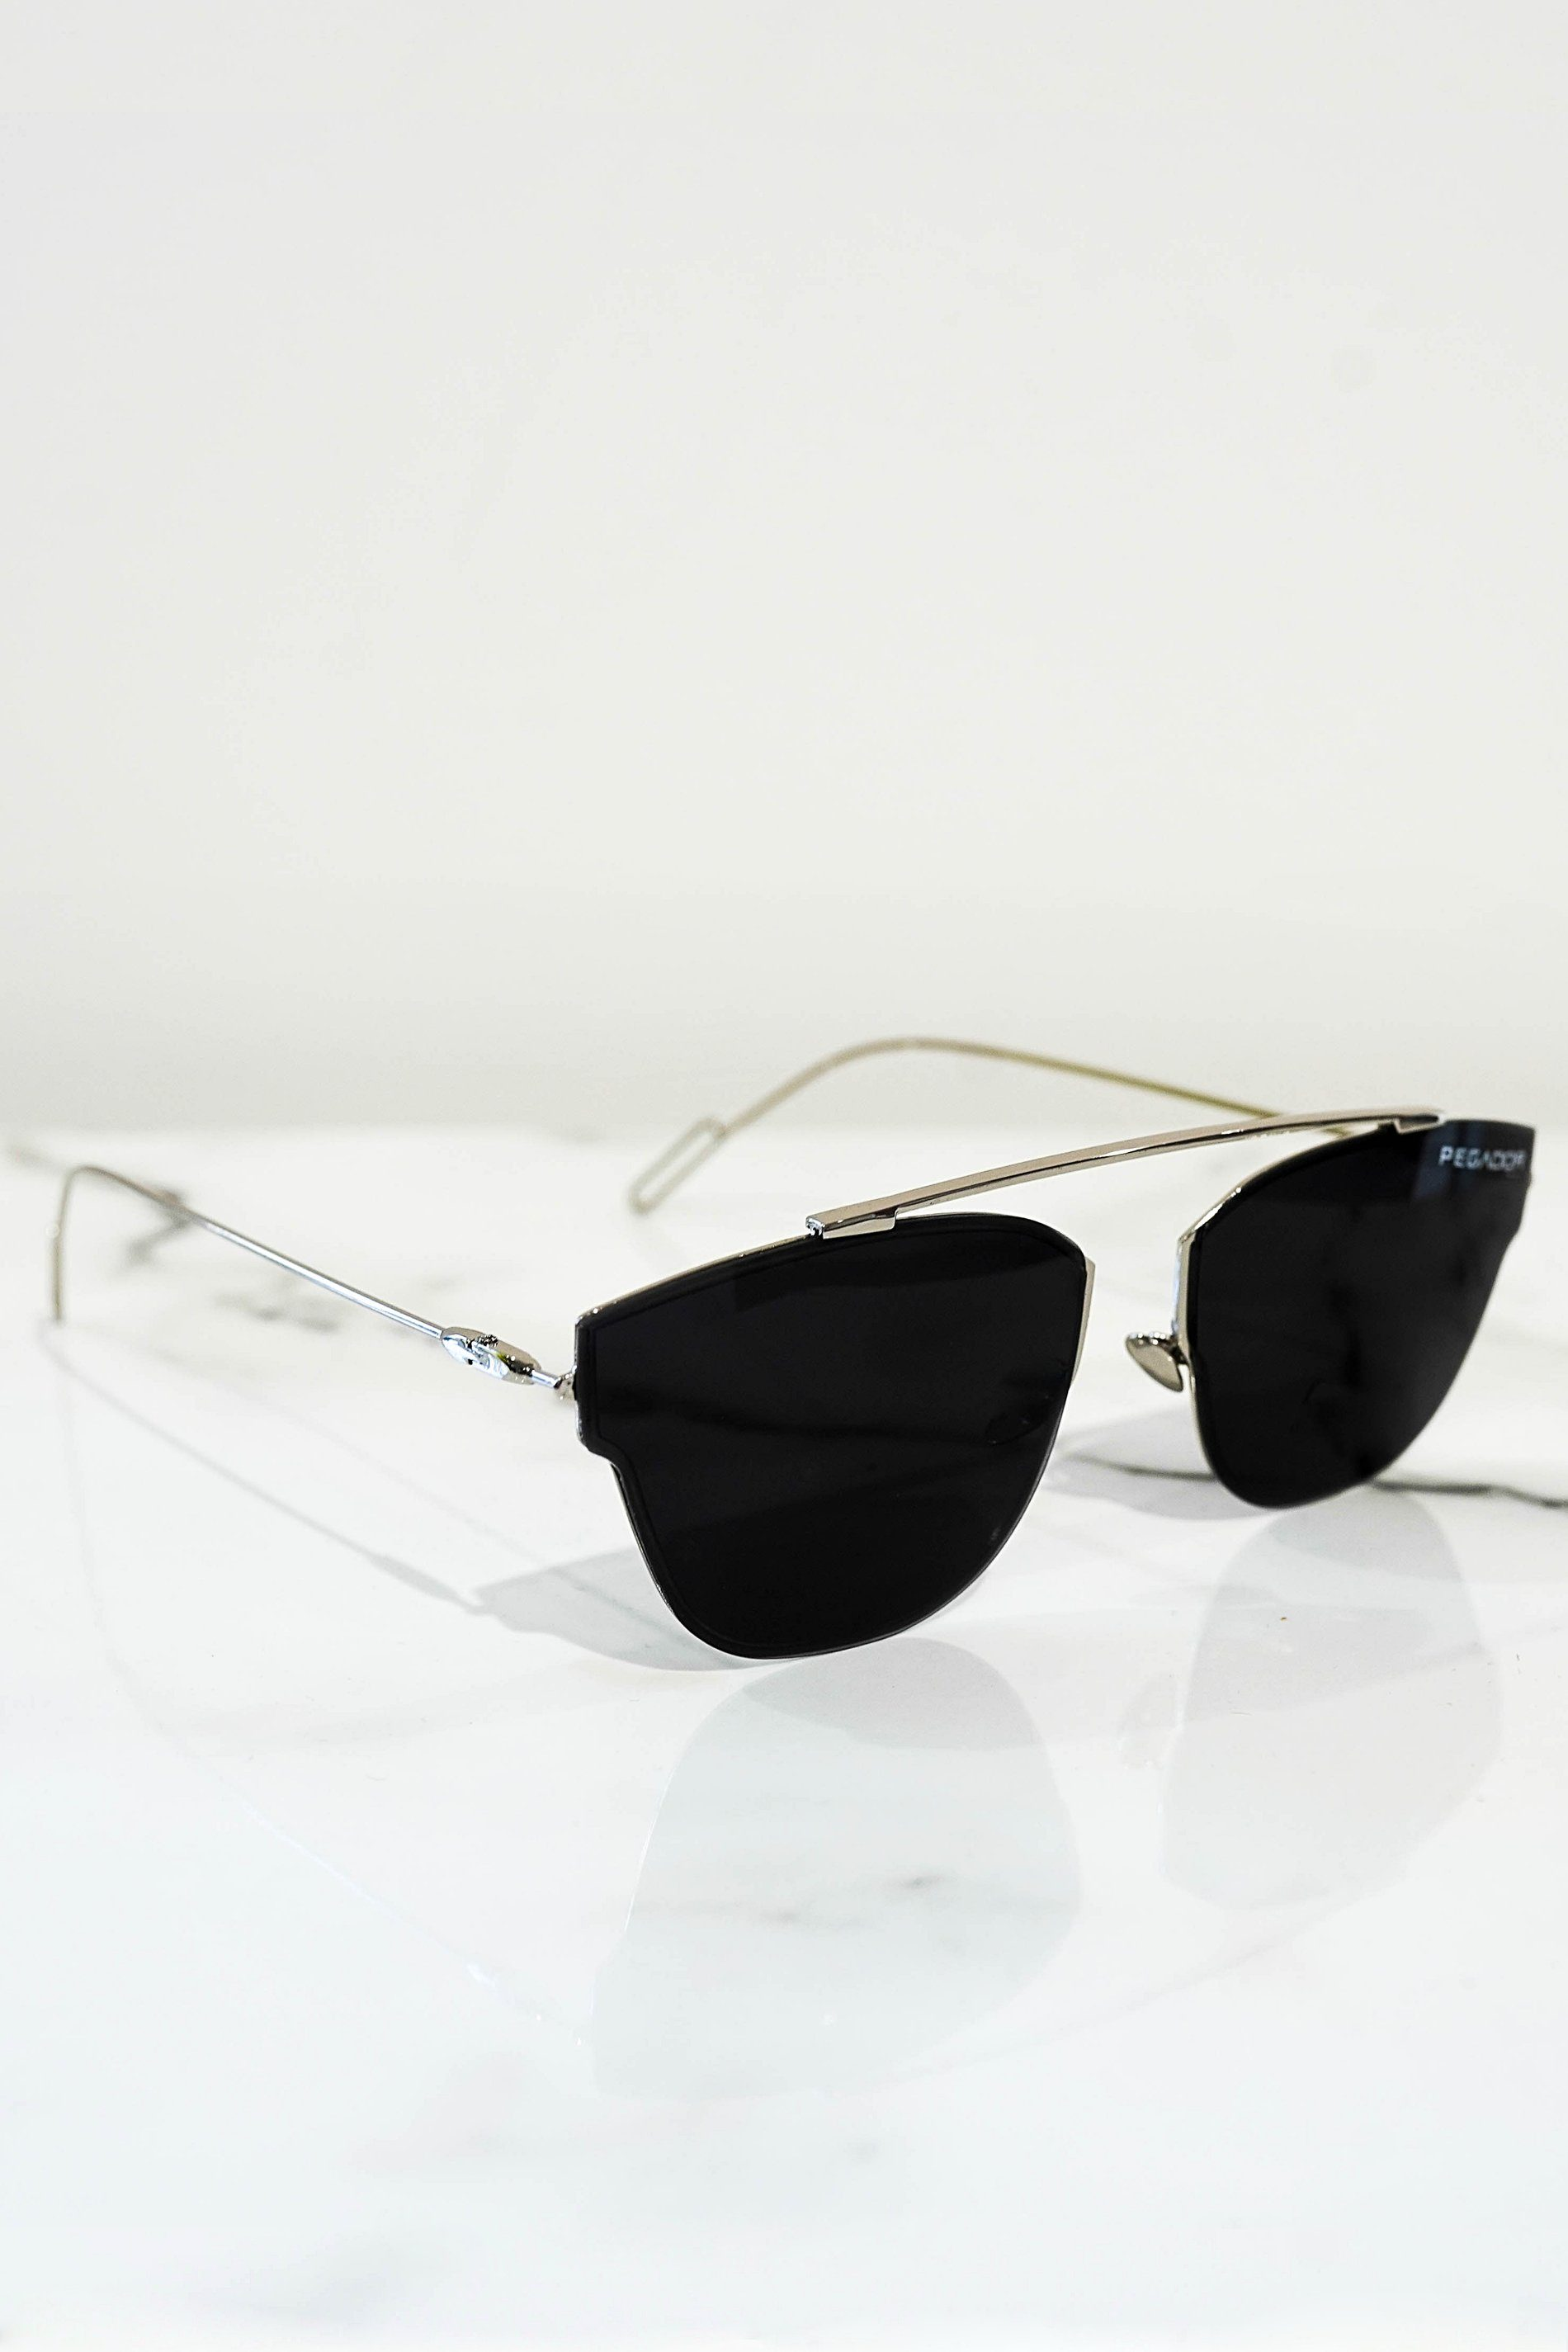 Logo sunglasses silver With dark lens - PEGADOR - Dominate the Hype